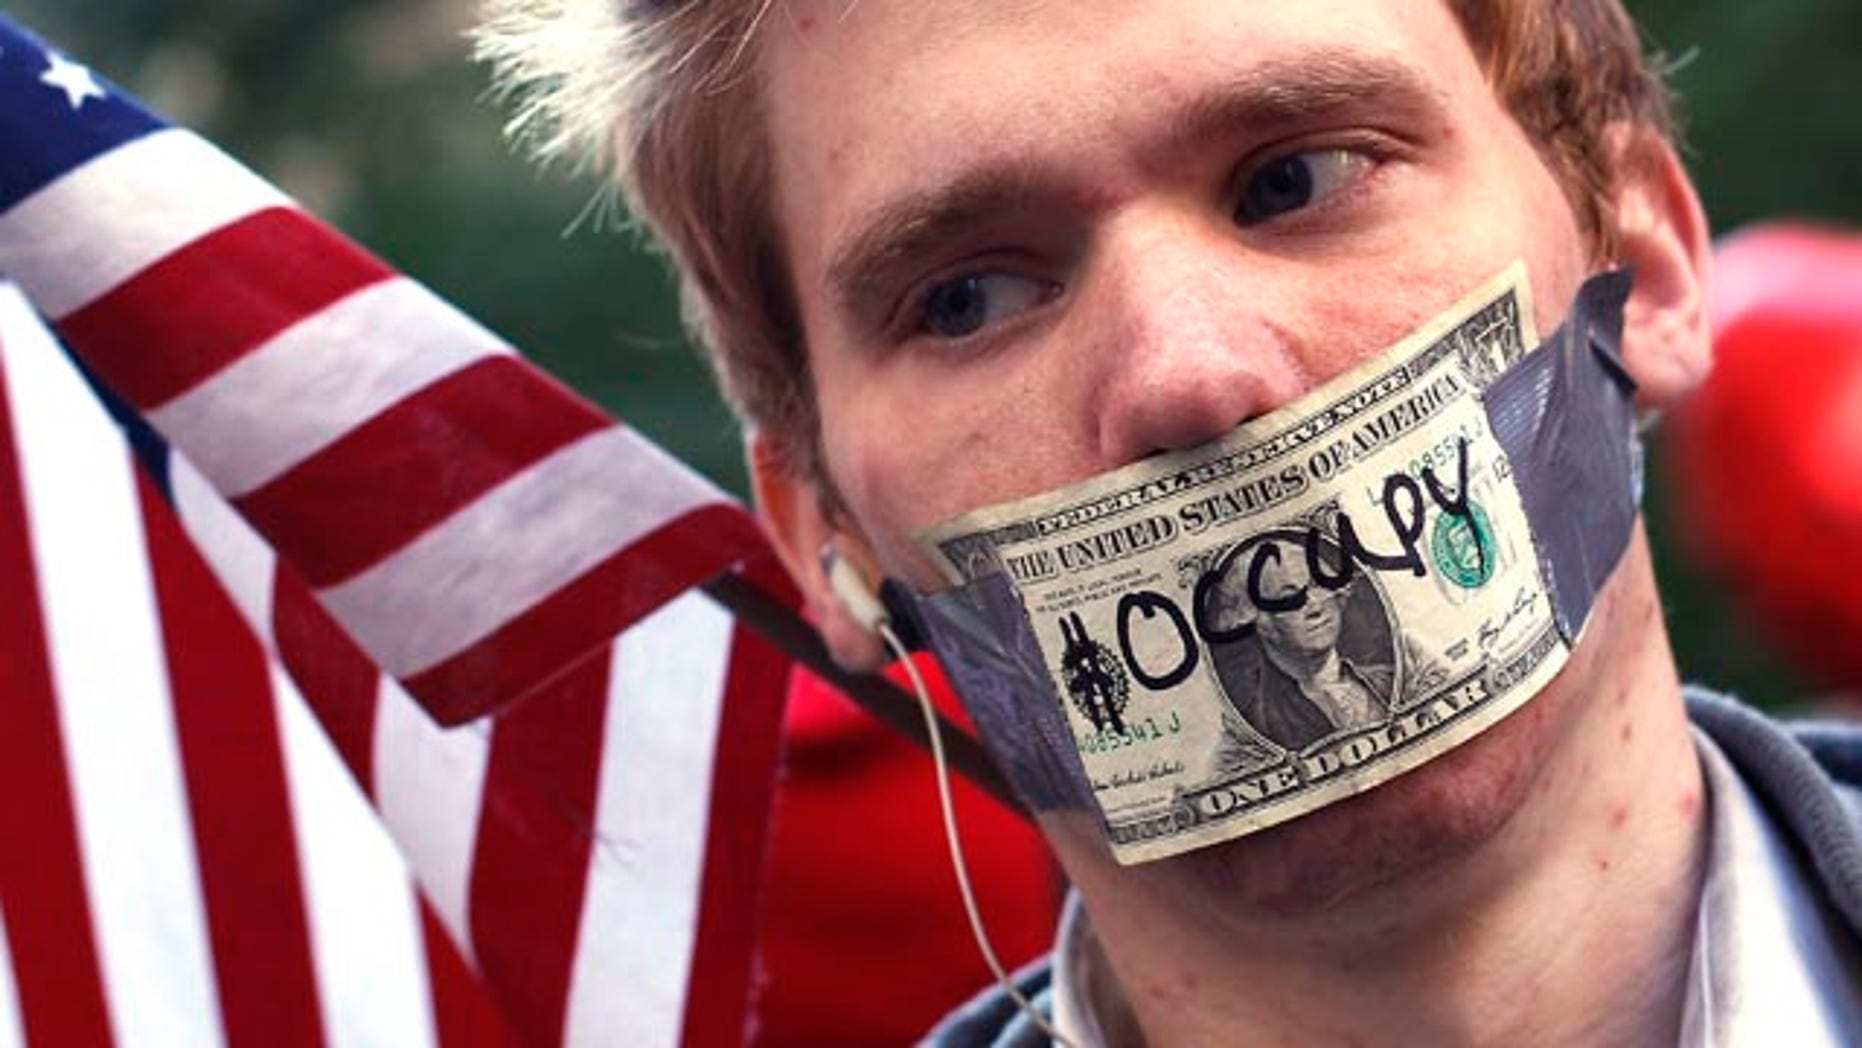 Oct. 17, 2011: An Occupy Wall Street campaign demonstrator stands in Zuccotti Park, near Wall Street in New York.